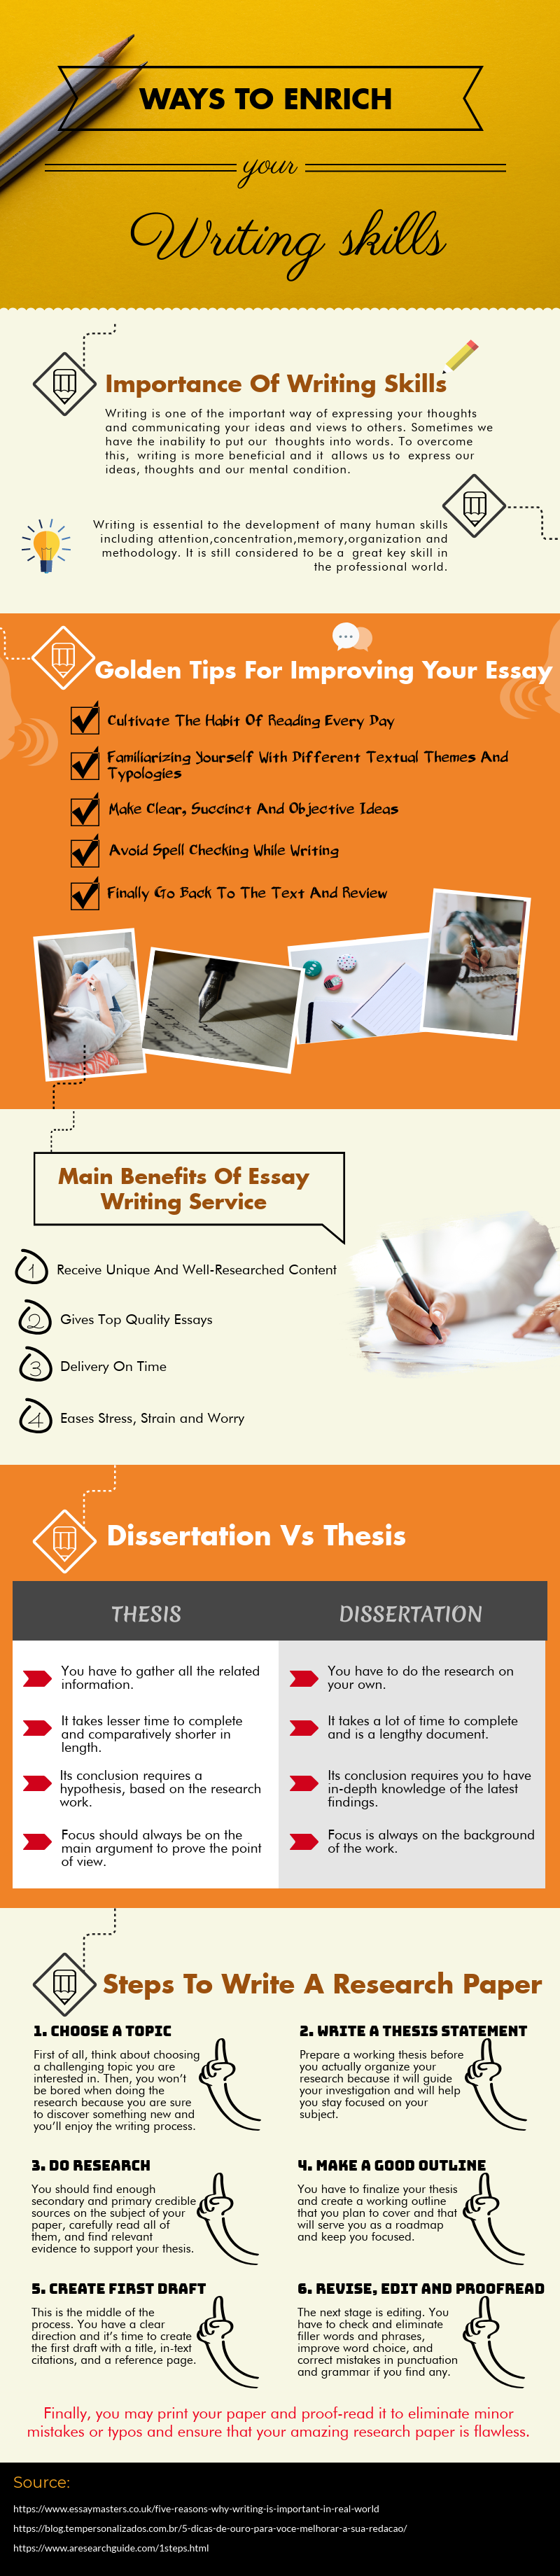 Tips for Writing the Introduction of an Essay #infographic